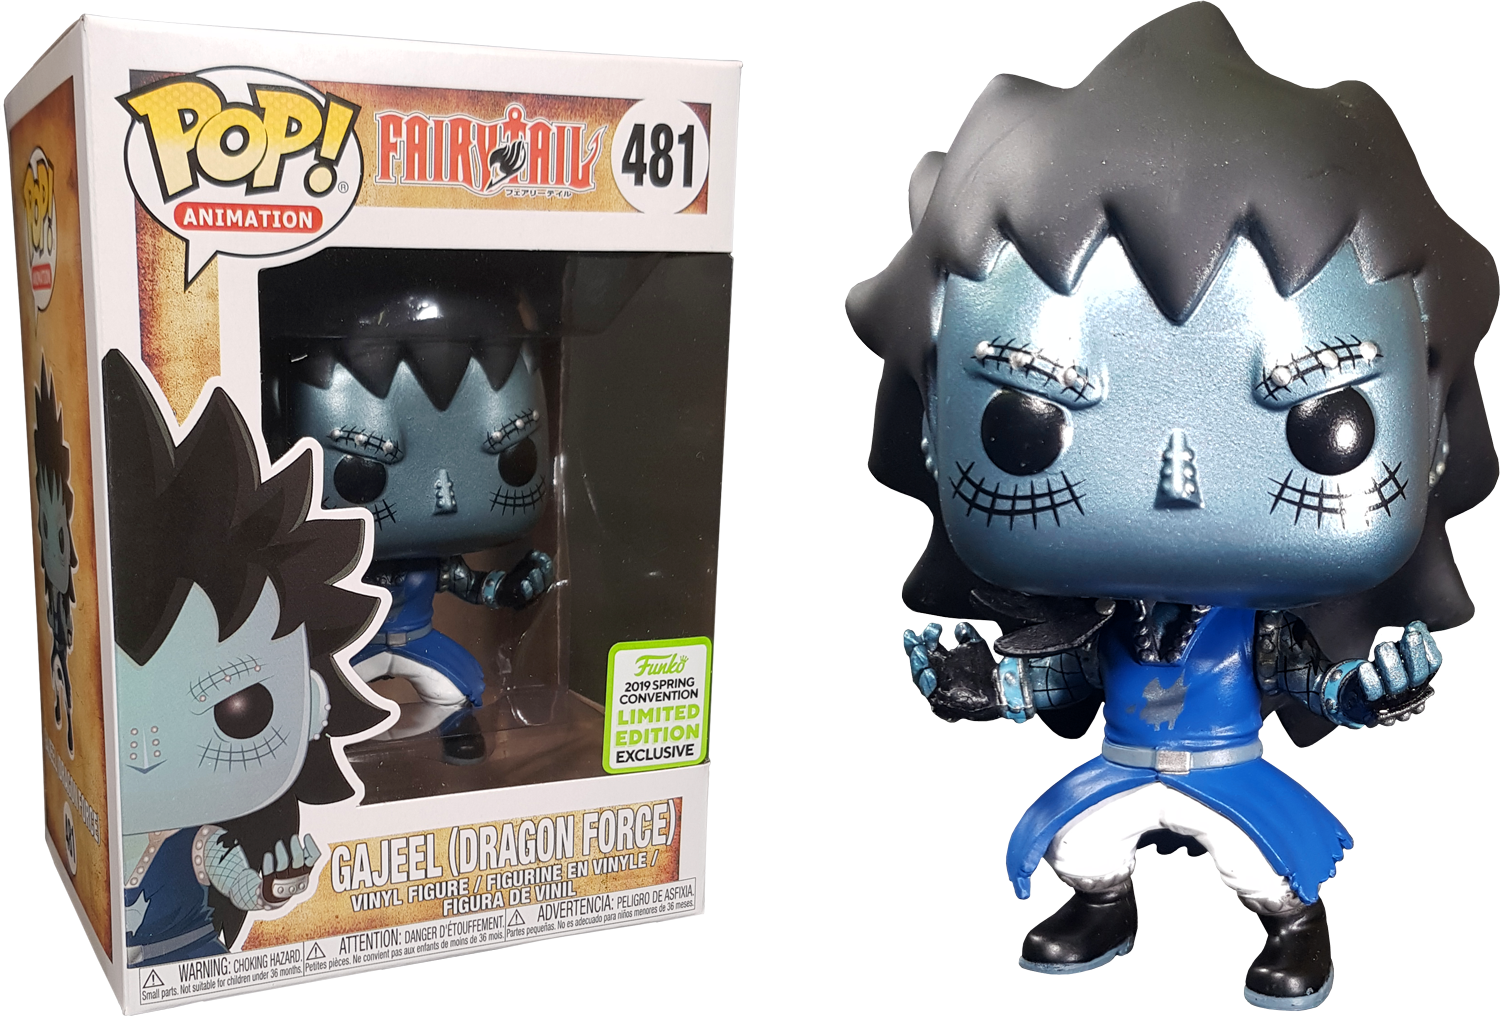 Fairy Tail - Gajeel with Dragon's Scale Pop! Vinyl Figure (2019 Spring Convention Exclusive)